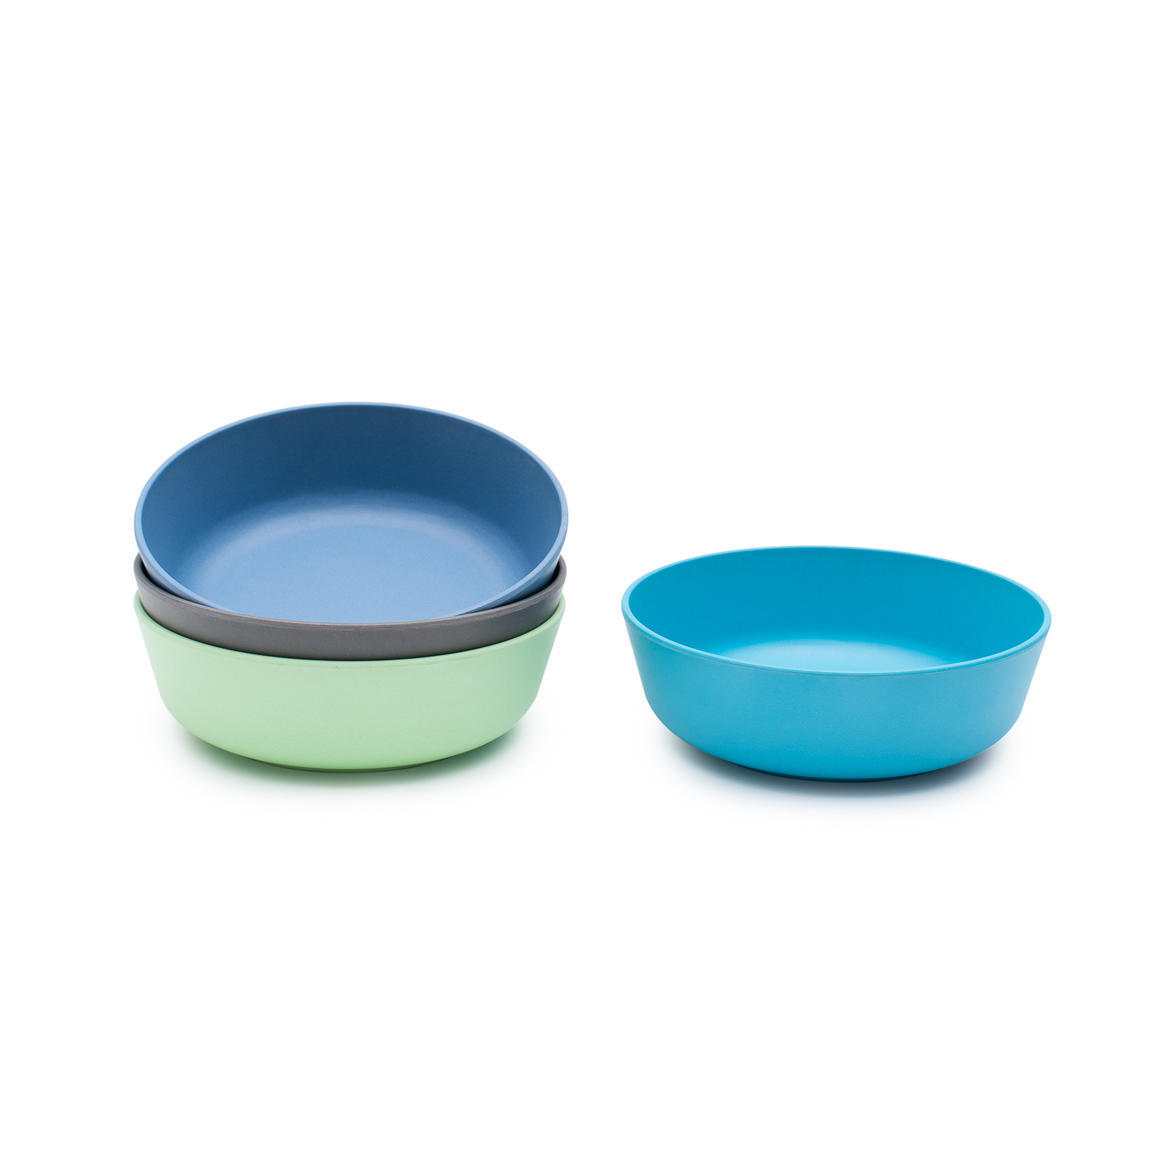 4 Pack Of Bowls  - Coastal Collection   Trada Marketplace